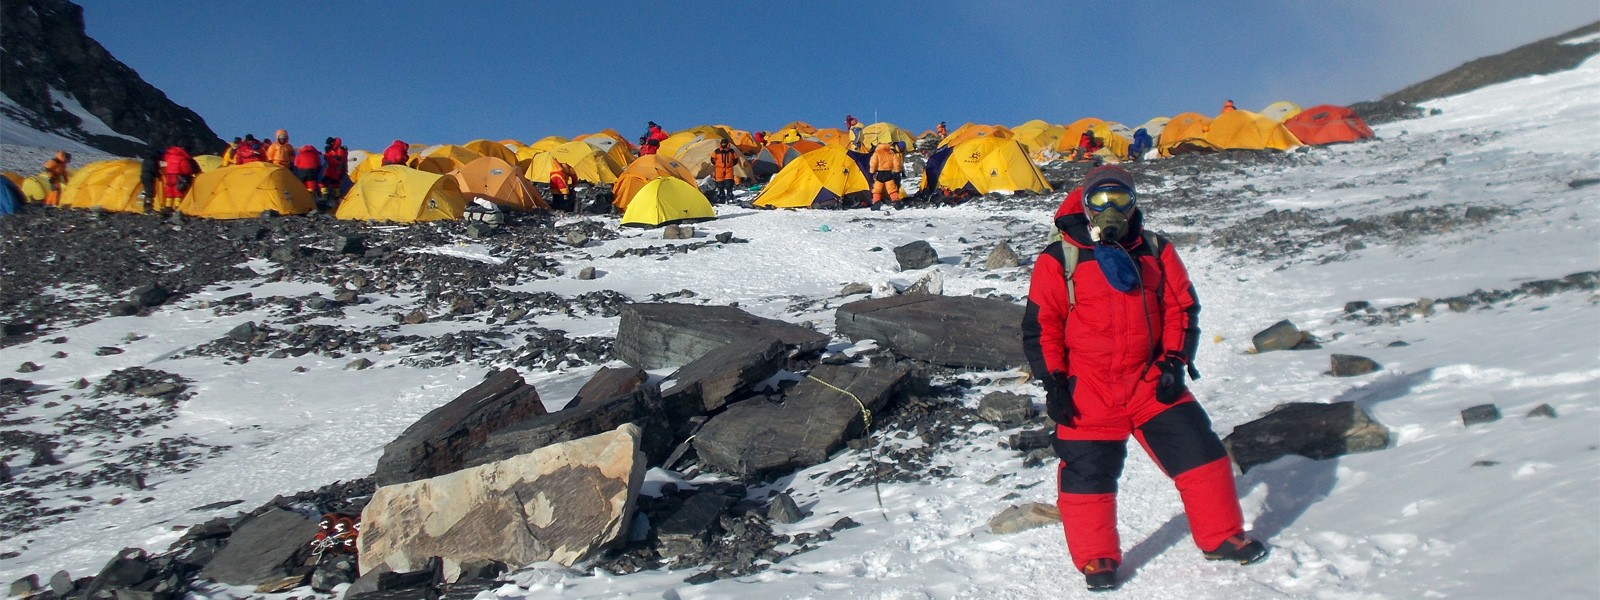 Mount Everest South Col Expedition - Nepal side